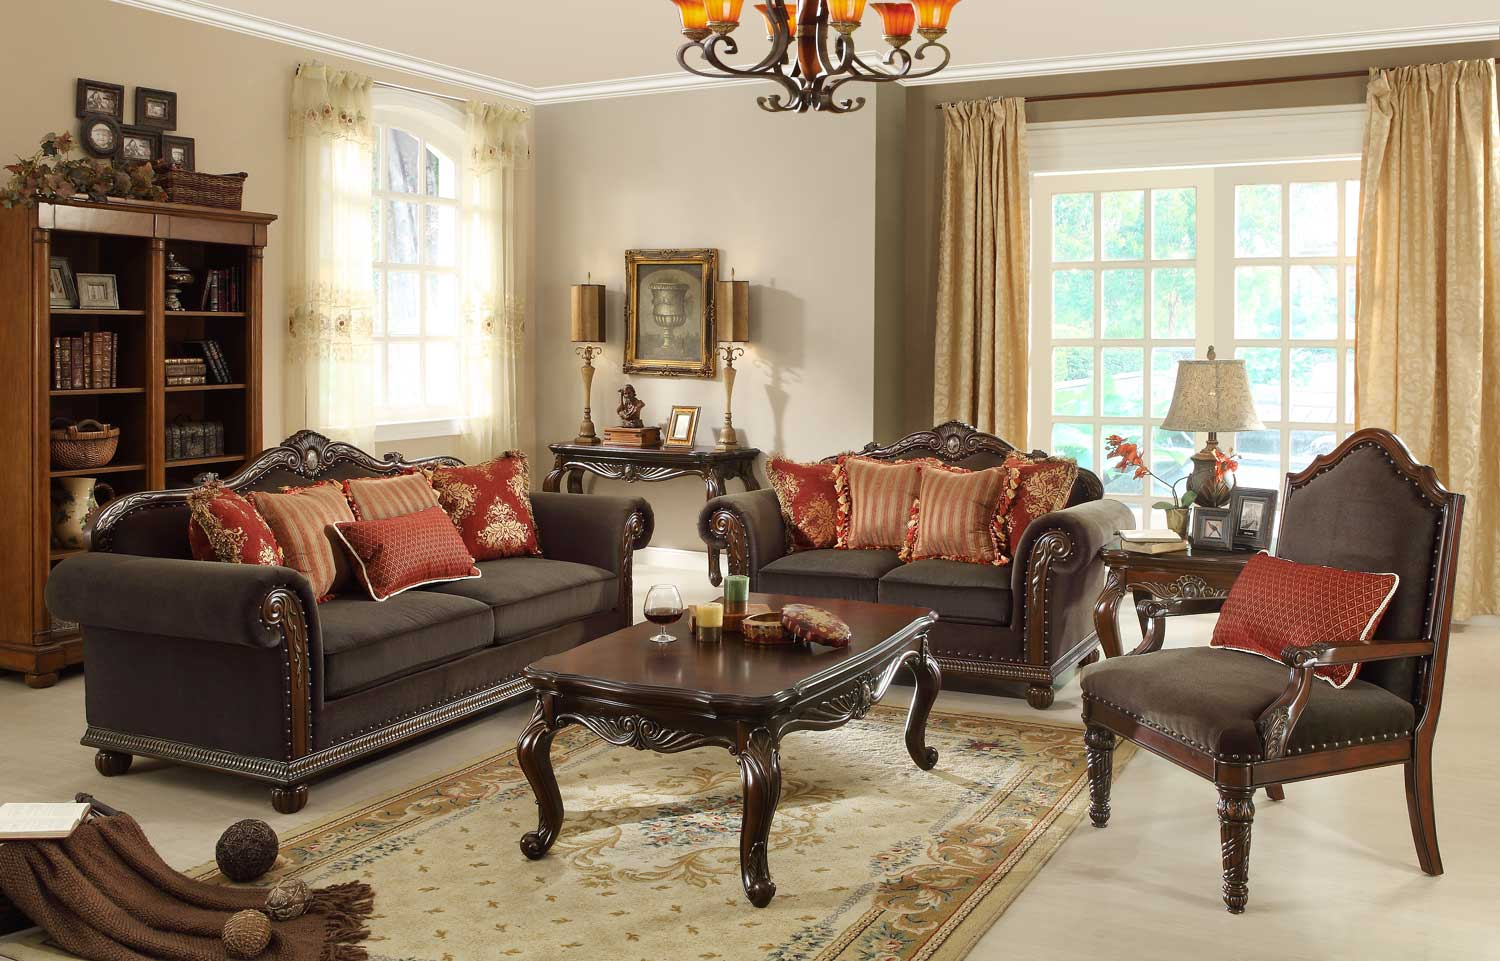 Homelegance Catalina II Sofa Set - Chocolate